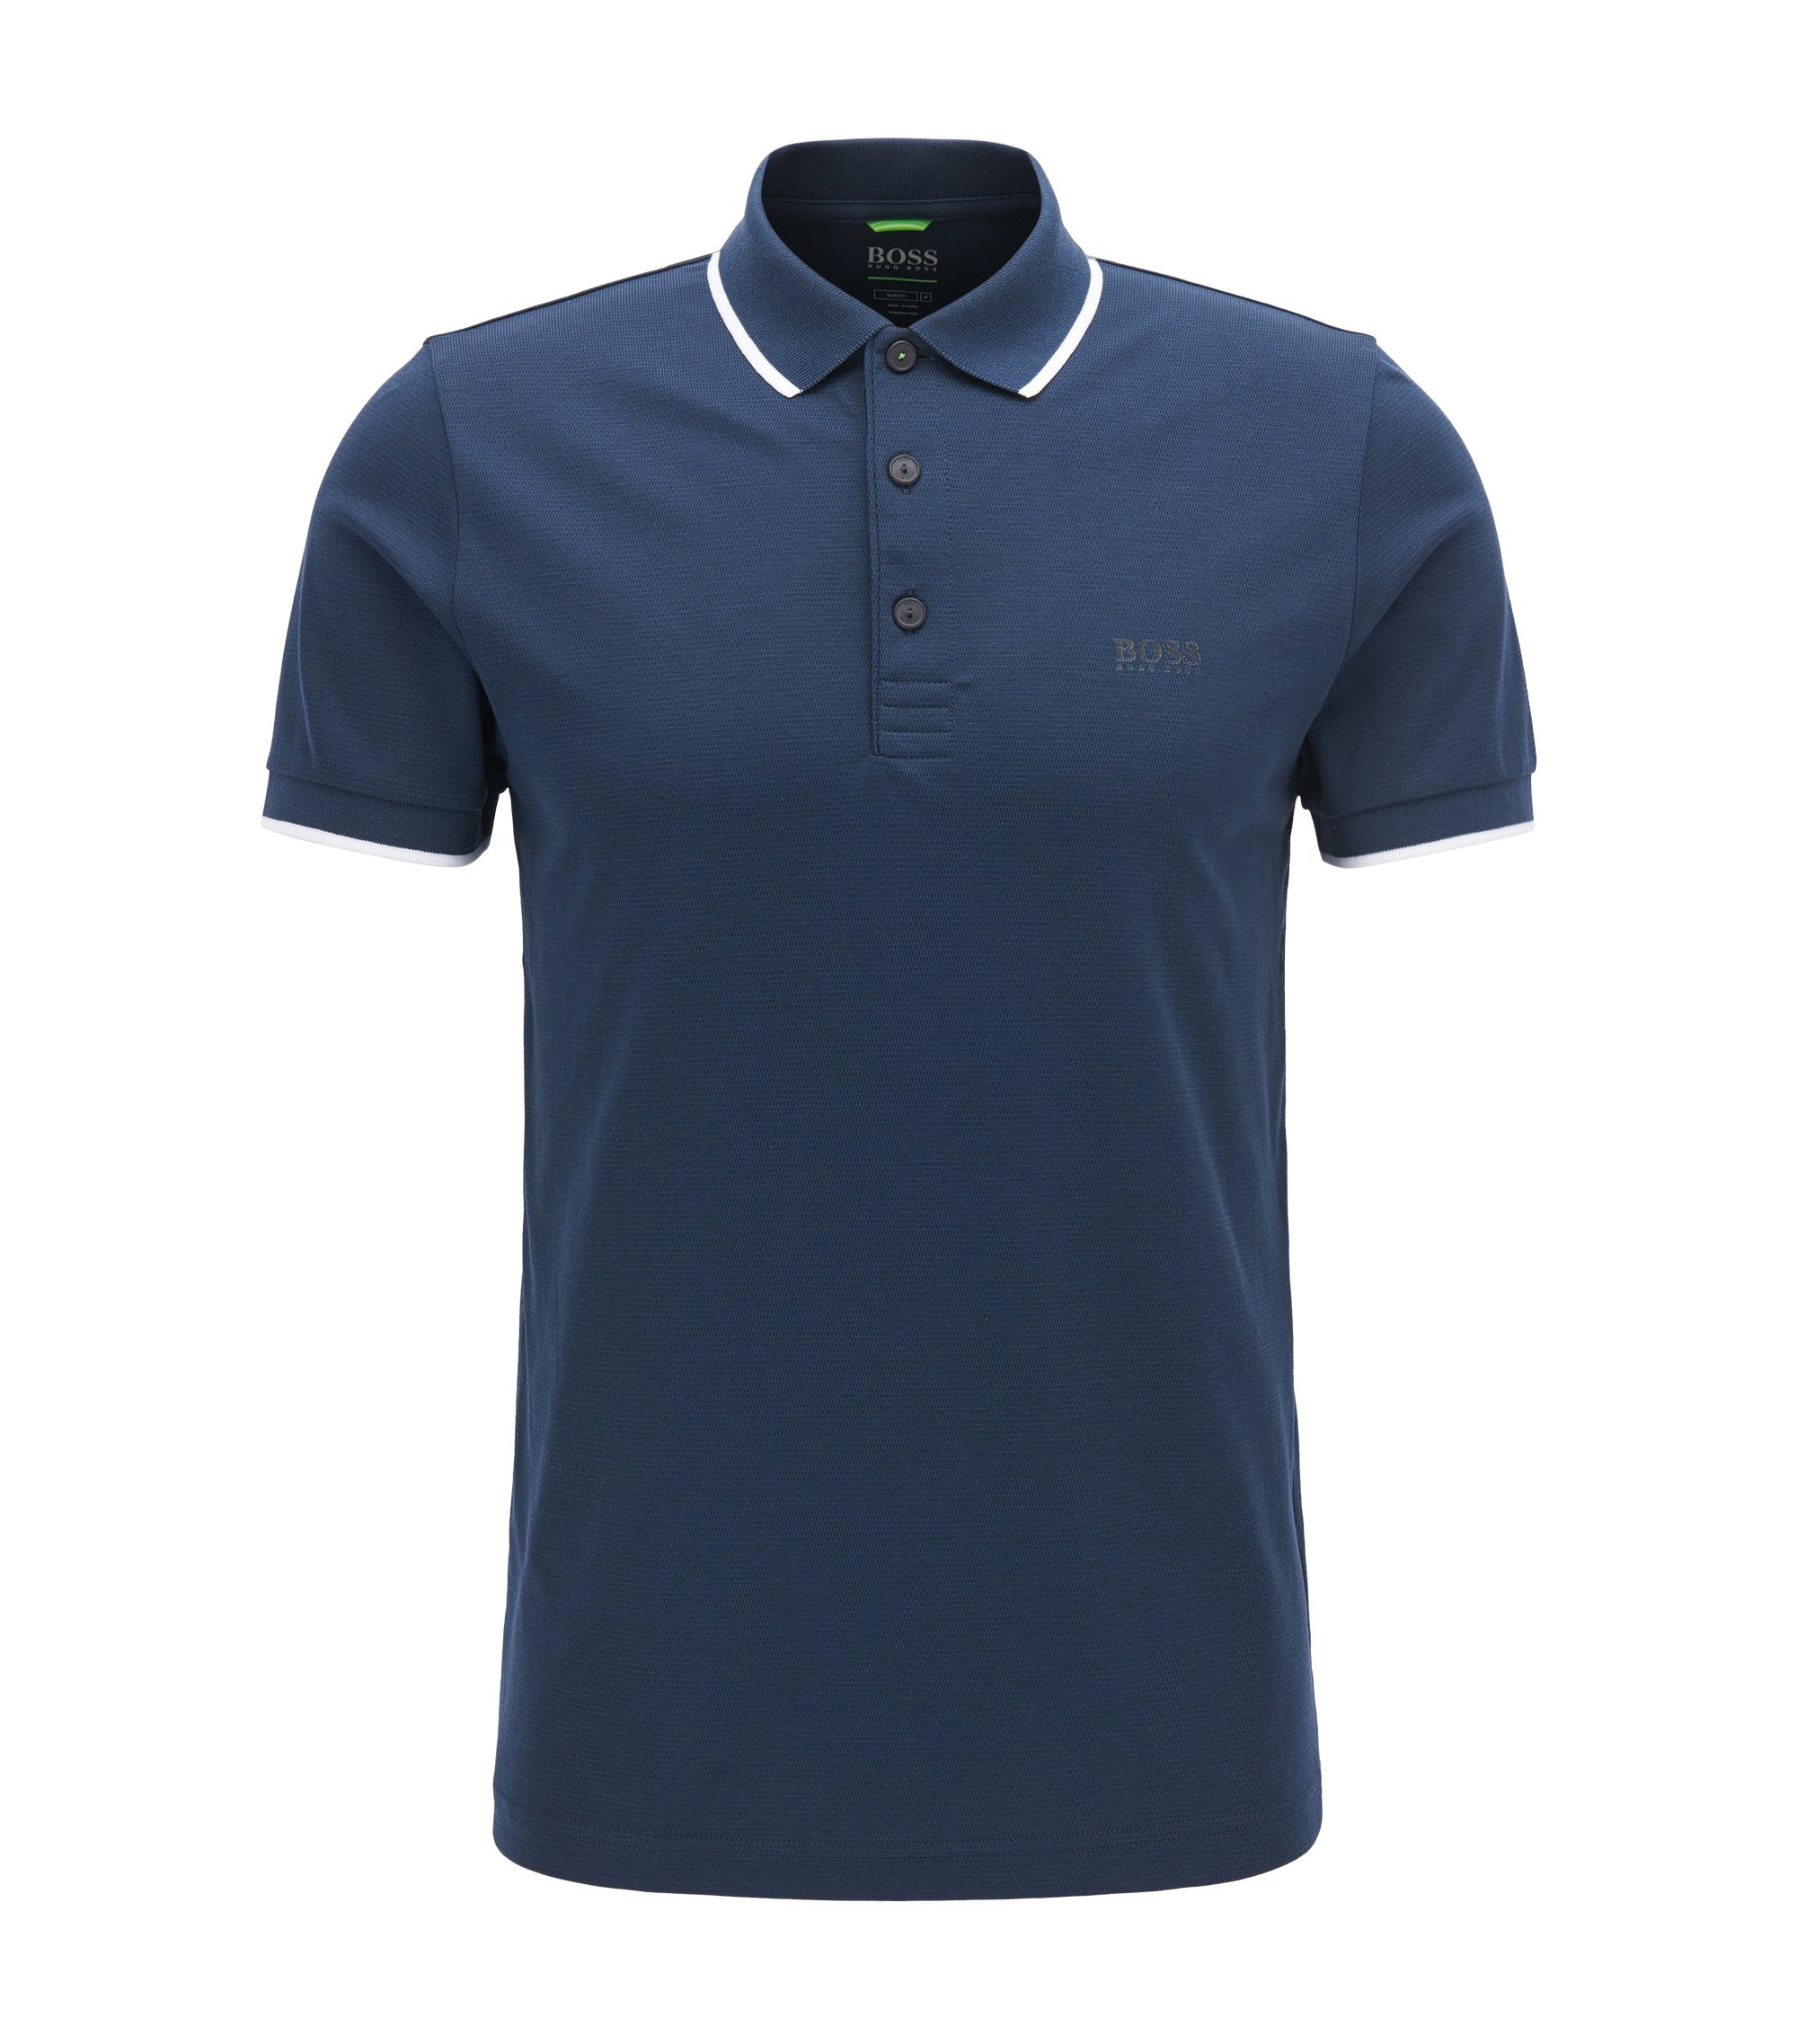 Tipped Cotton Blend Polo Shirt, Slim Fit | PL Tech, Dark Blue